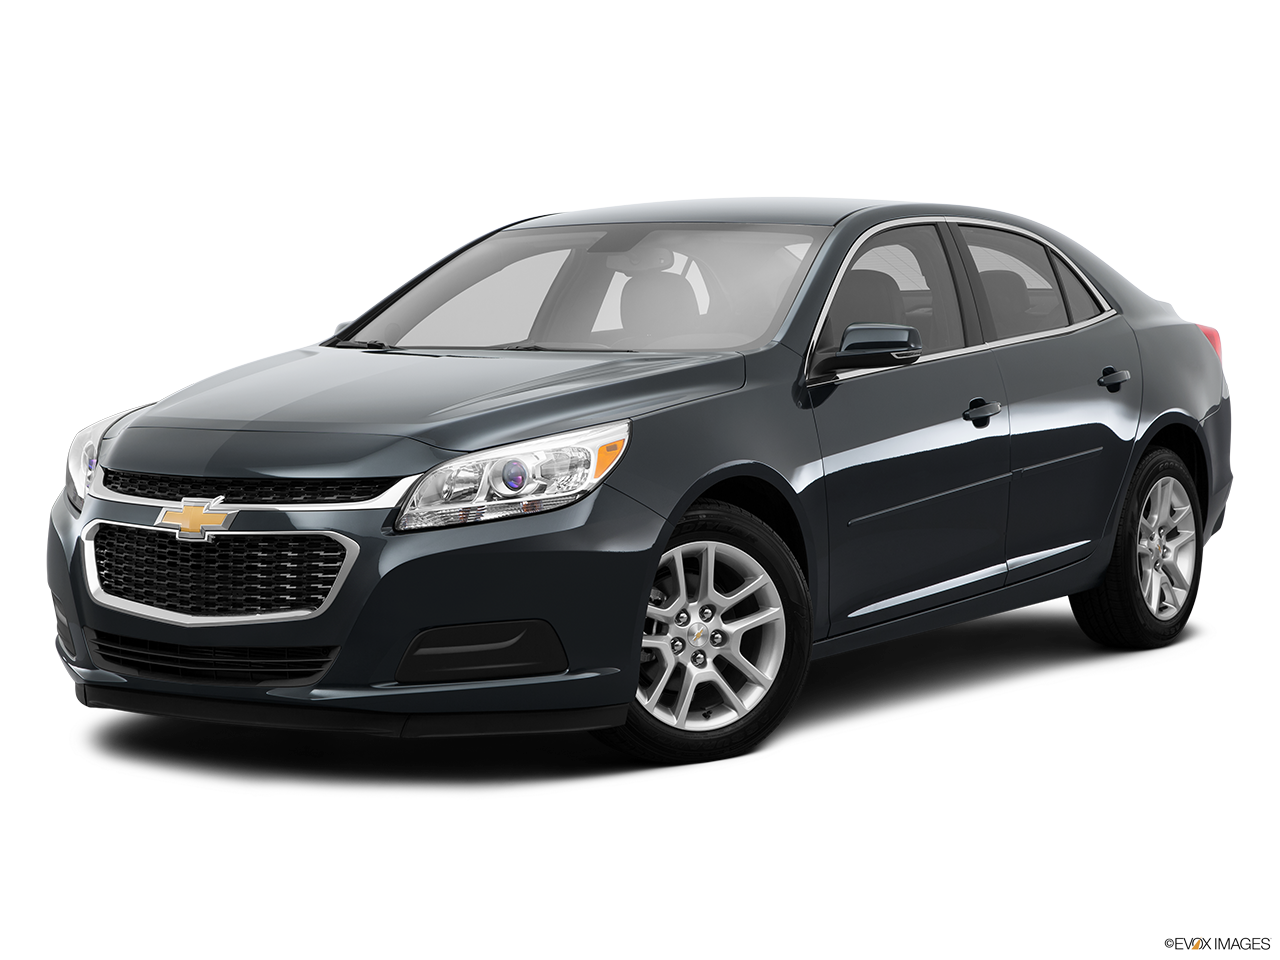 2015 chevrolet malibu hampton roads casey chevrolet. Black Bedroom Furniture Sets. Home Design Ideas